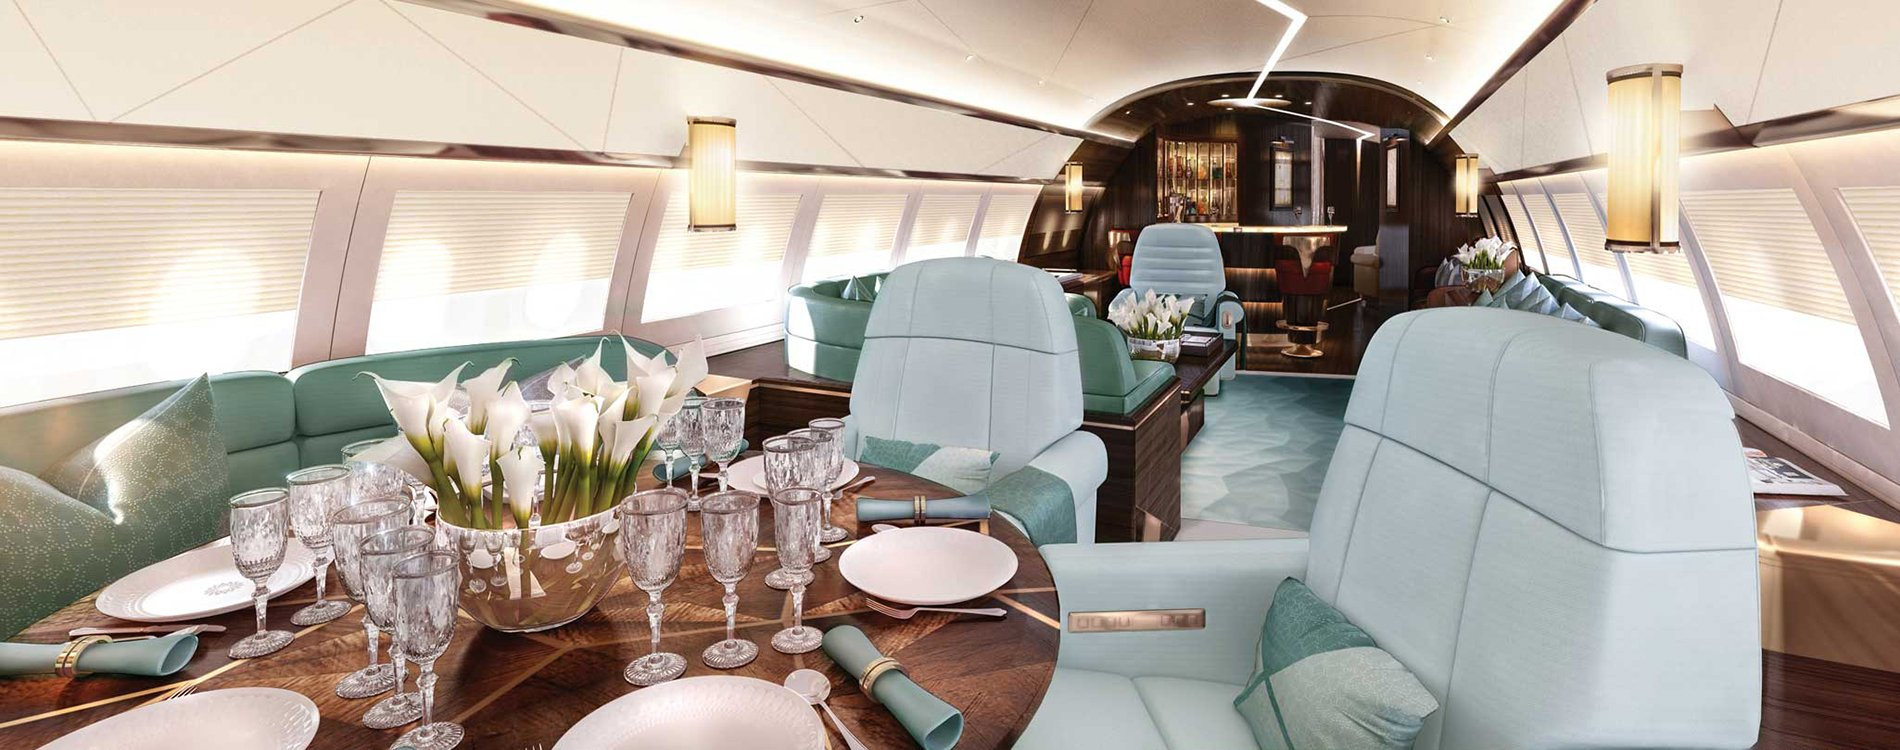 Andrew Winch Designs personaliza jets privados